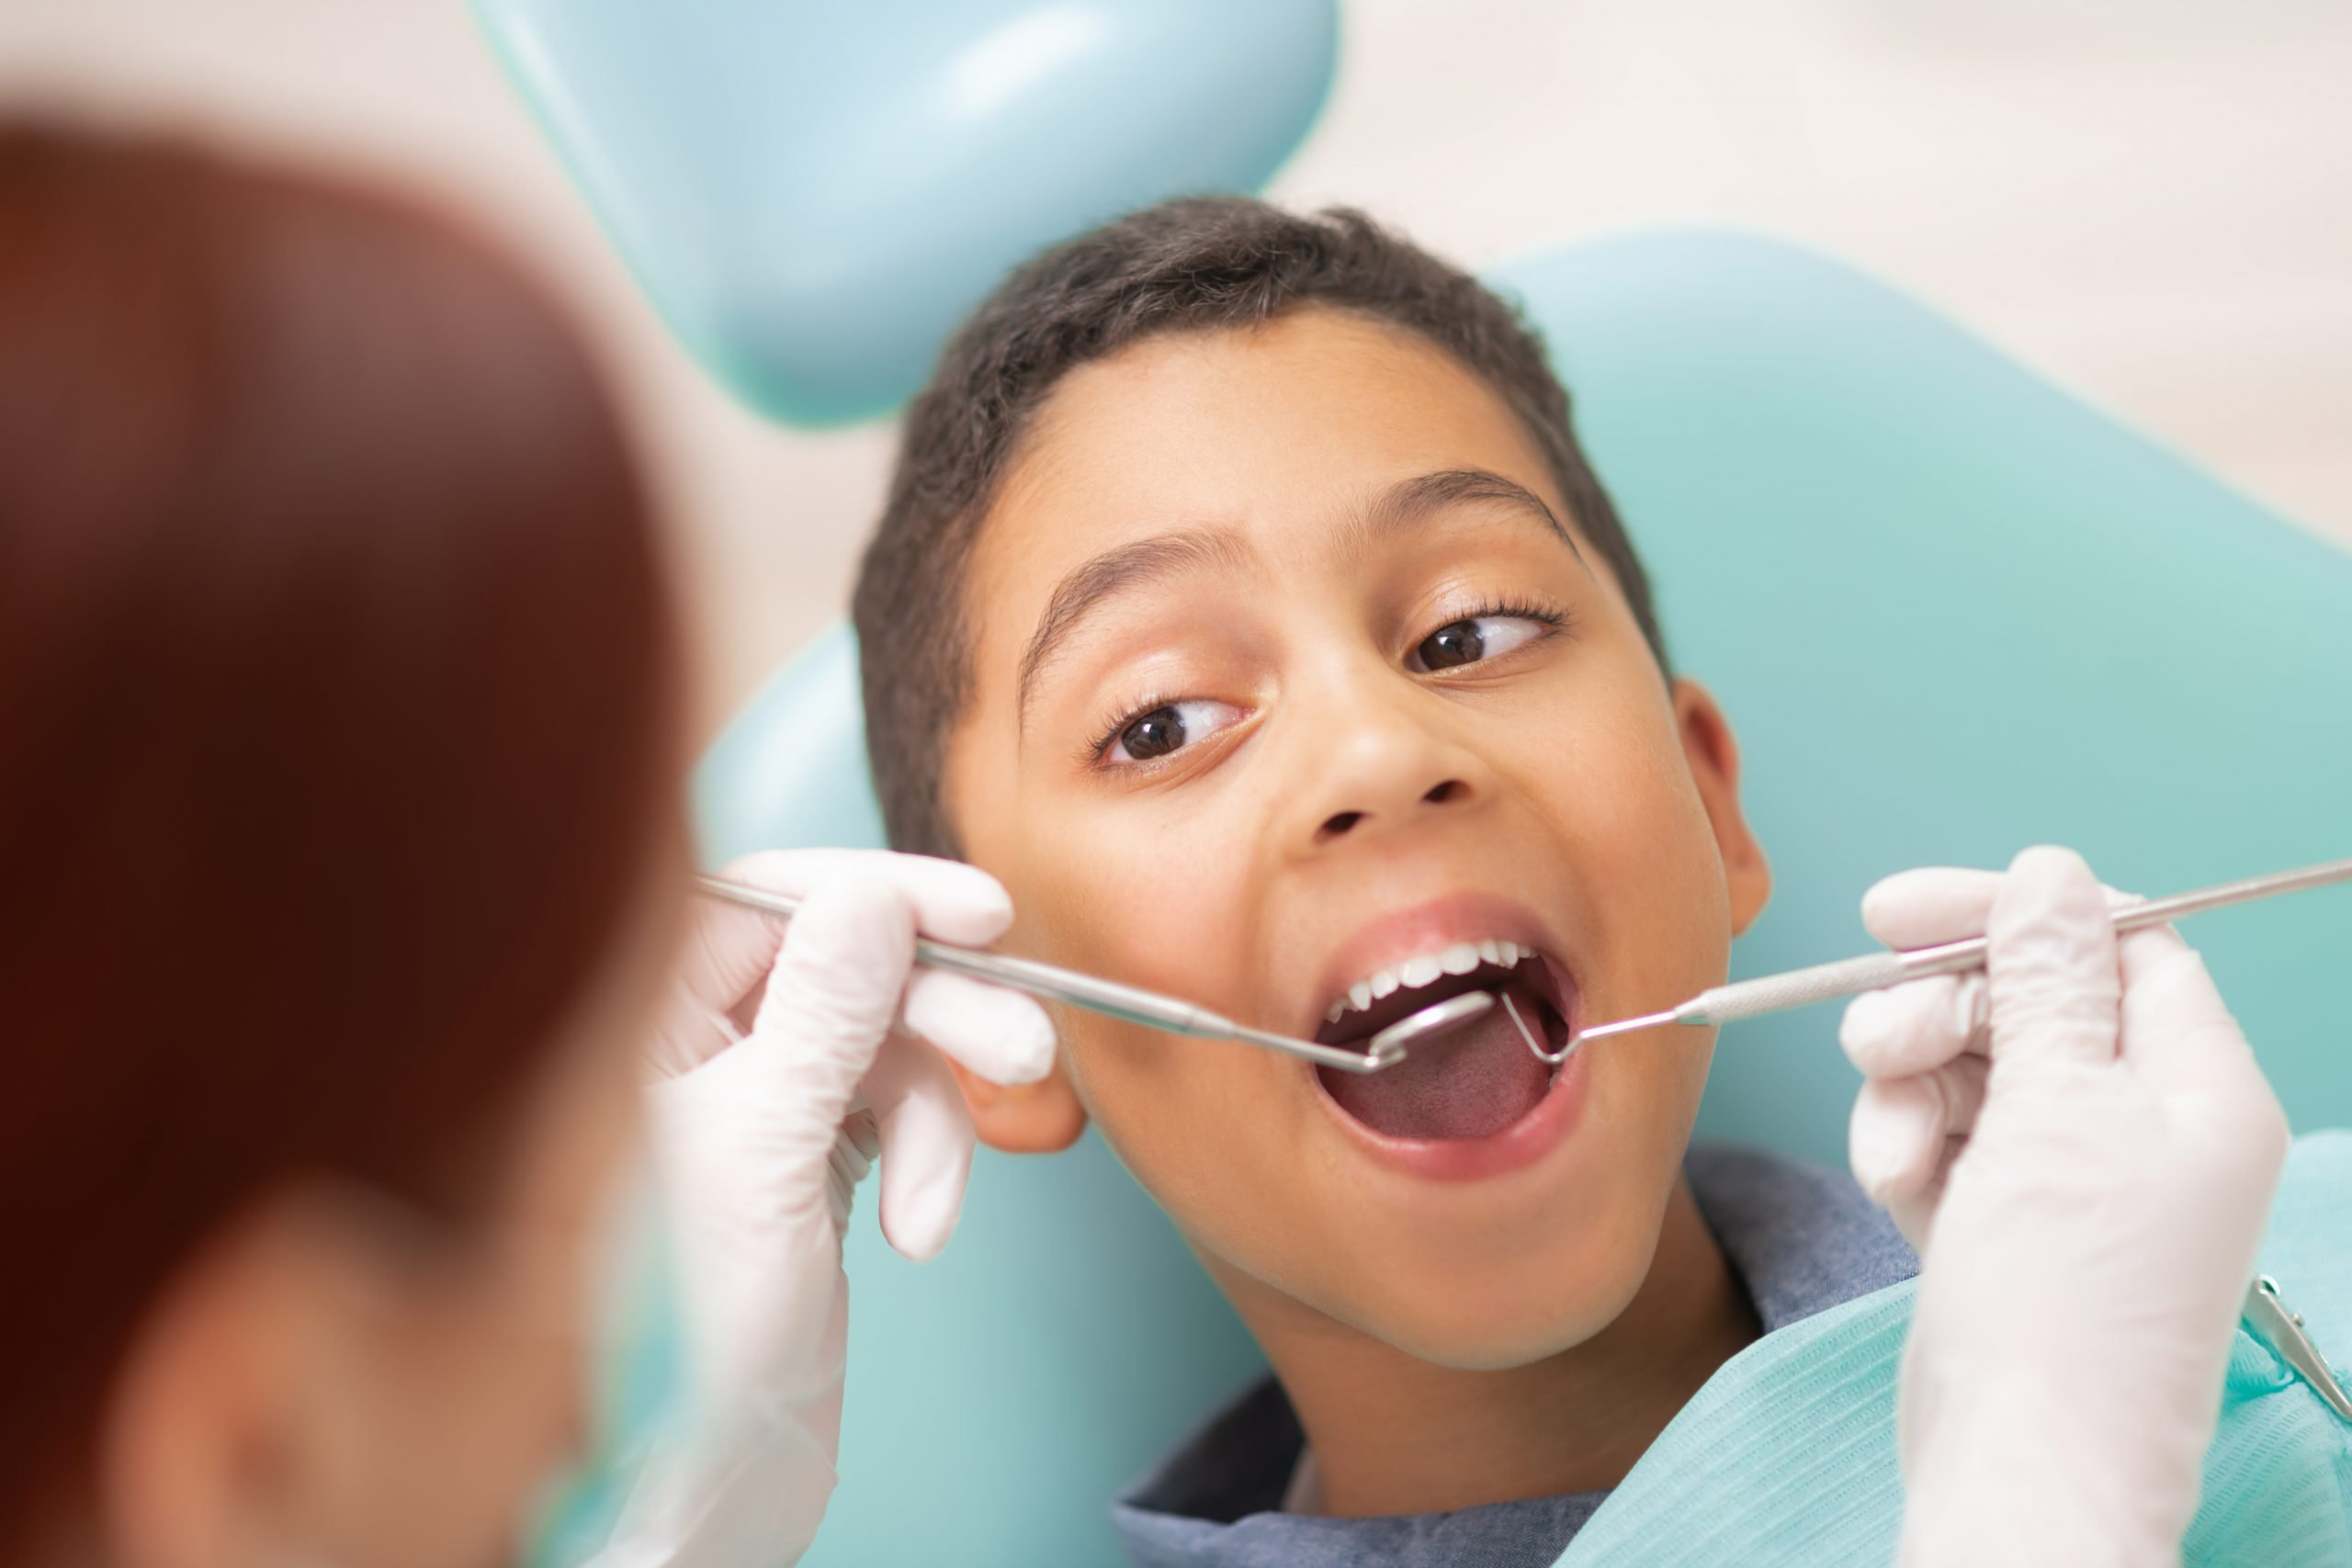 Family Dentist in Orange County, California